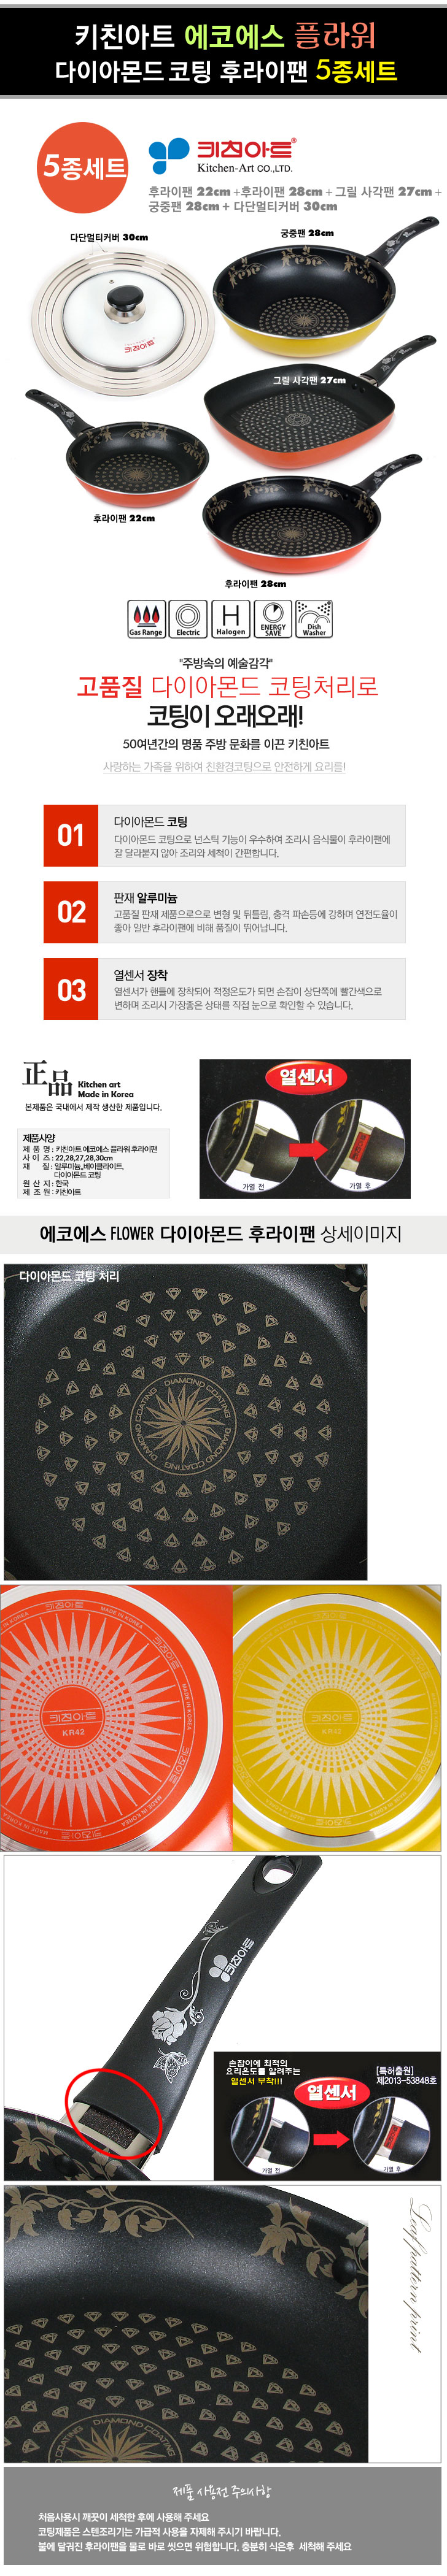 [ KITCHENART ] Kitchenart Eco S Flower Temperature Sensor Frypan 5 Pcs Set (22Fry+28 Fry +27Grill+28Wok+Lid)